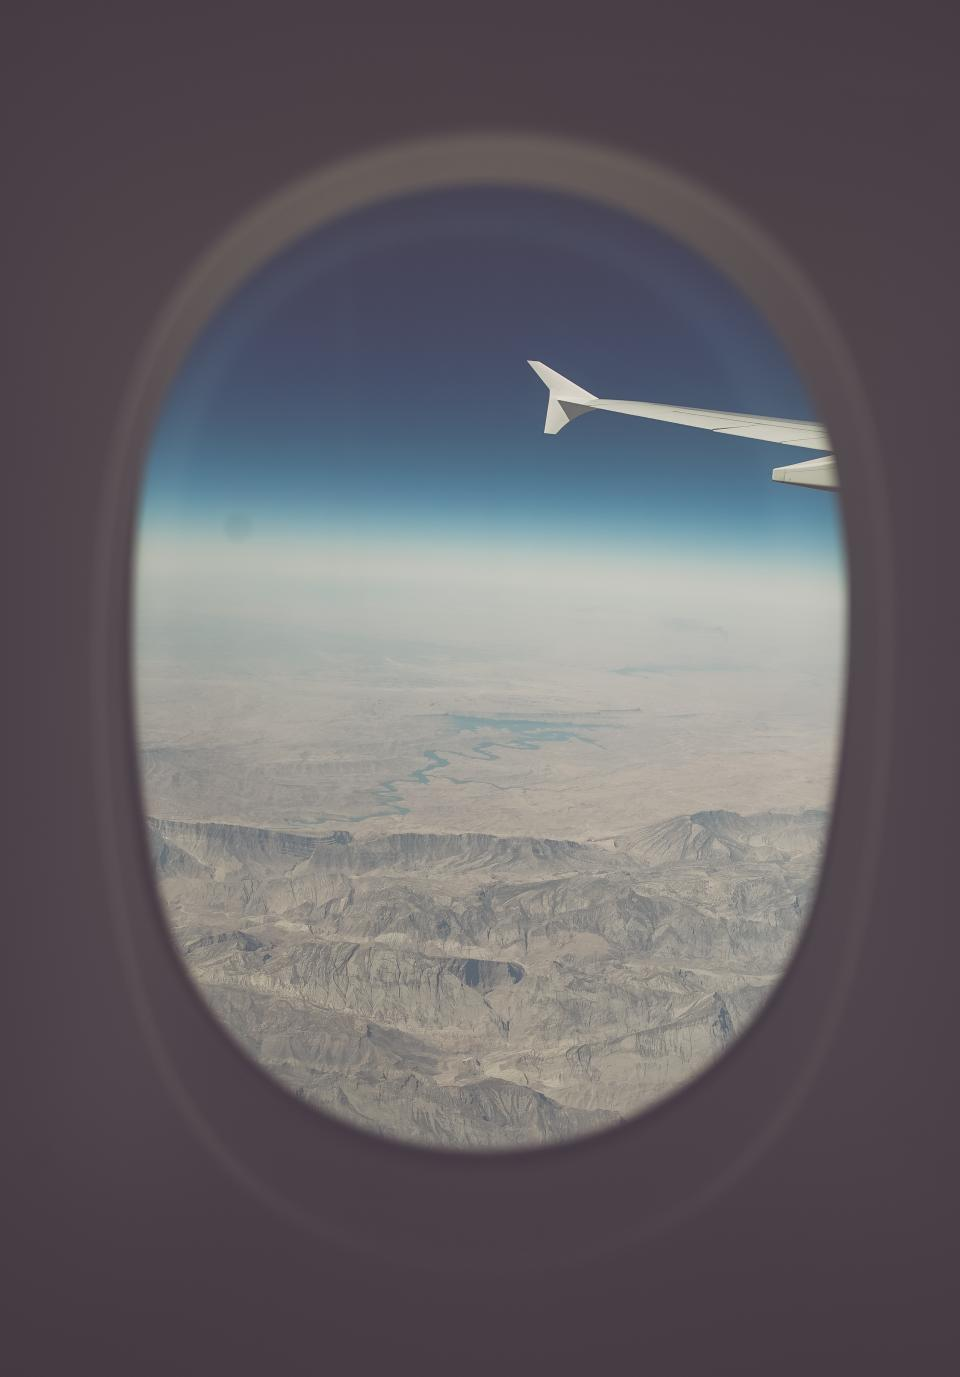 airplane, airline, travel, trip, blue, sky, flight, window, outside, view